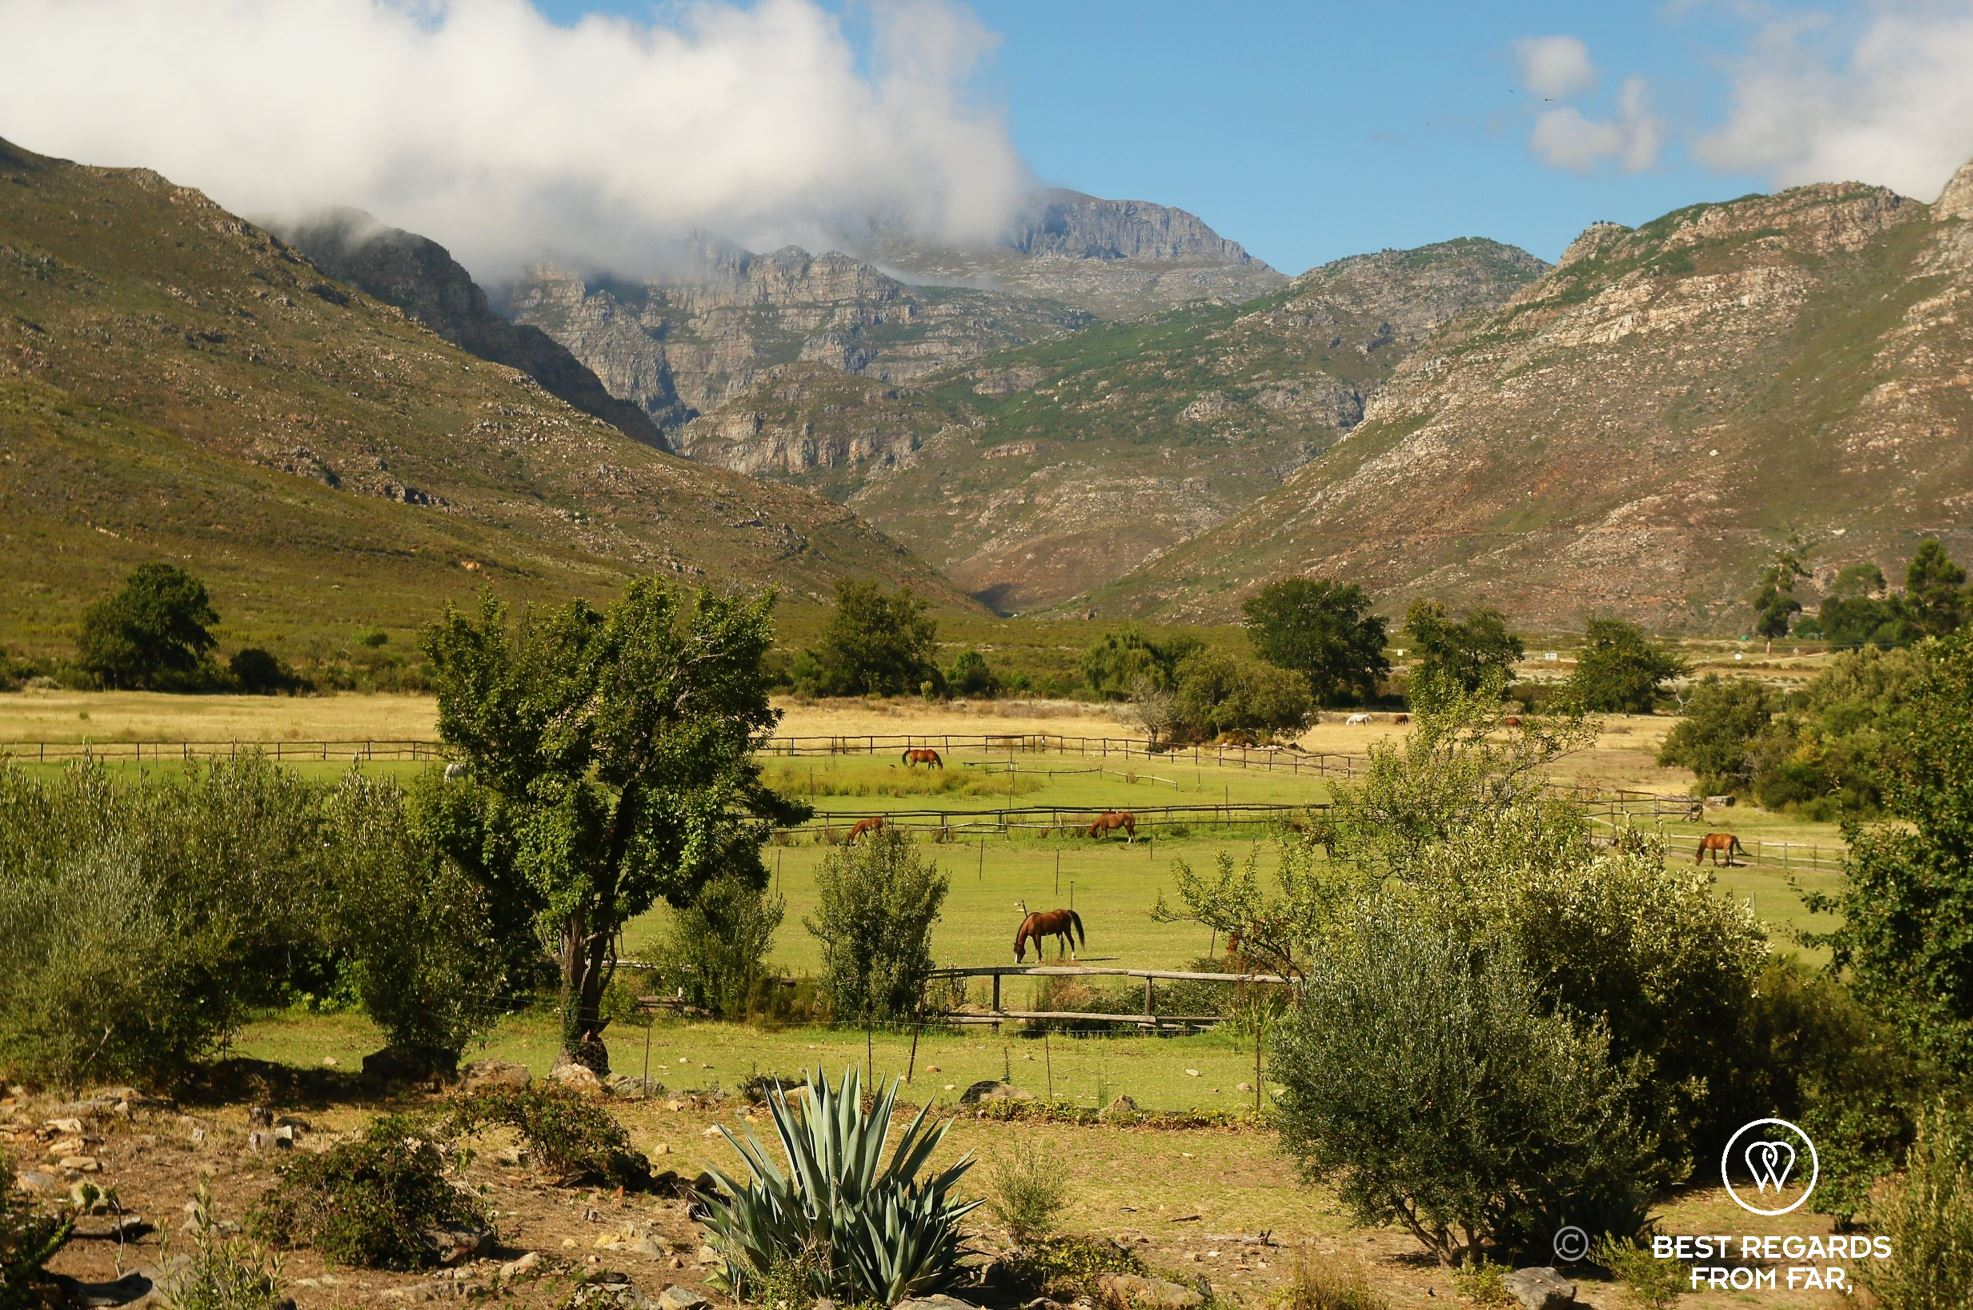 Horses in fields with mountains in the background, Franschhoek, South Africa